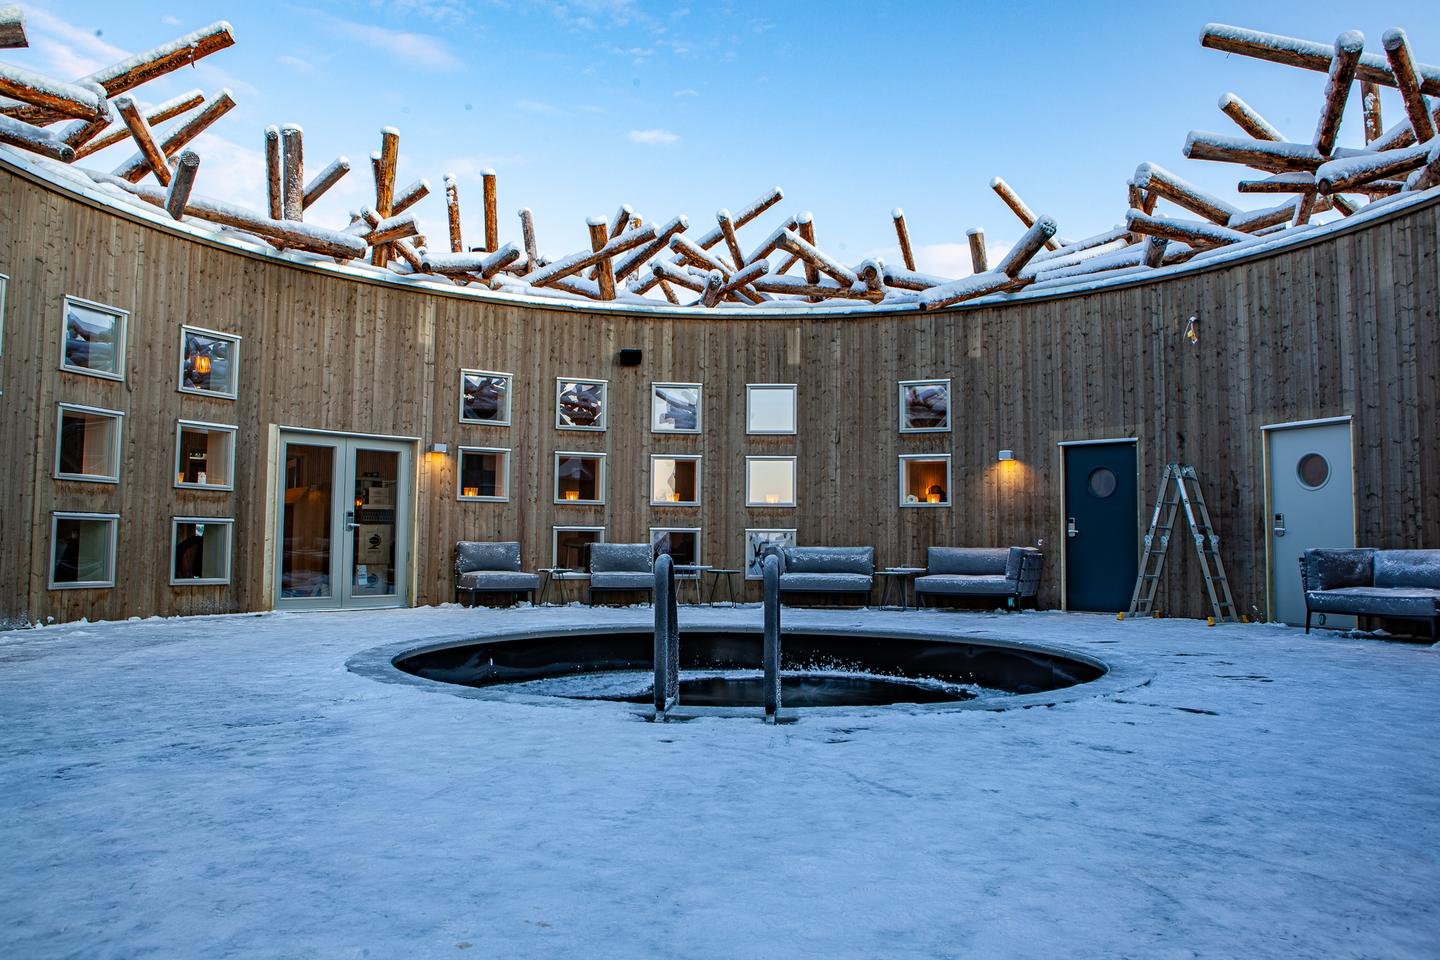 The Arctic Bath contains a plunge pool in its center for hardy types to take a dip in the cold waters